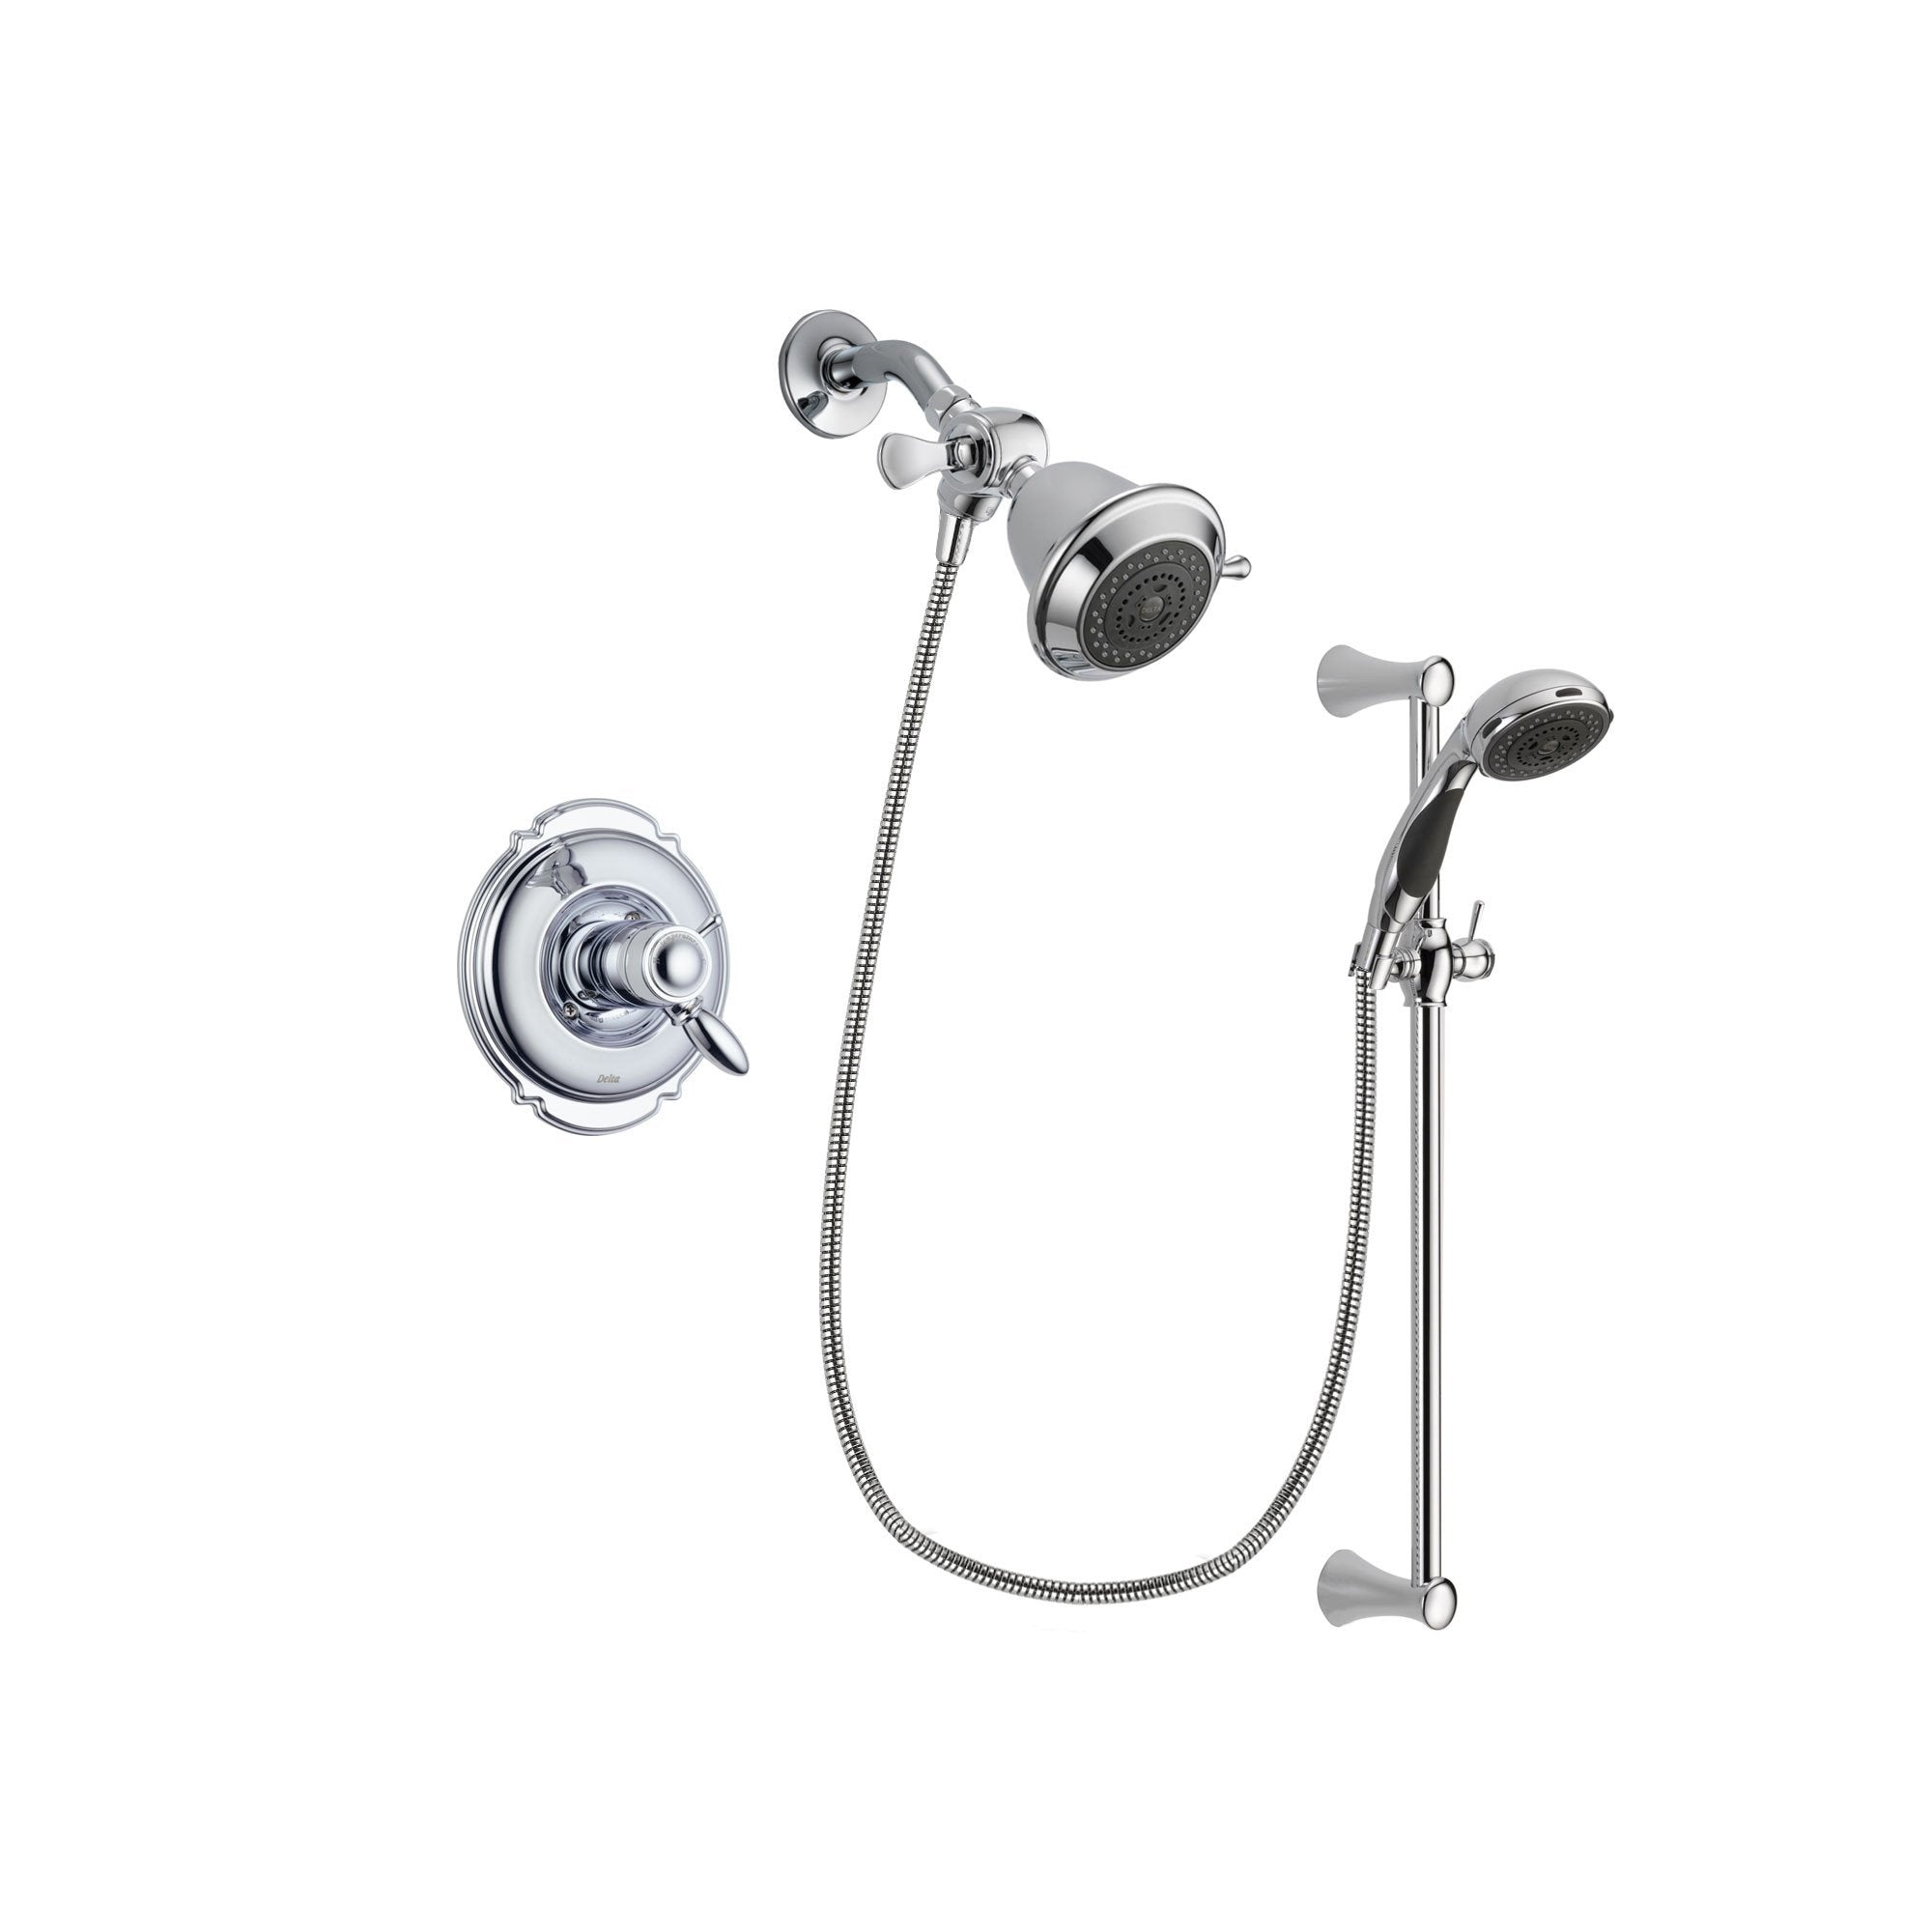 Delta Victorian Chrome Shower Faucet System Package with Hand Shower DSP0700V